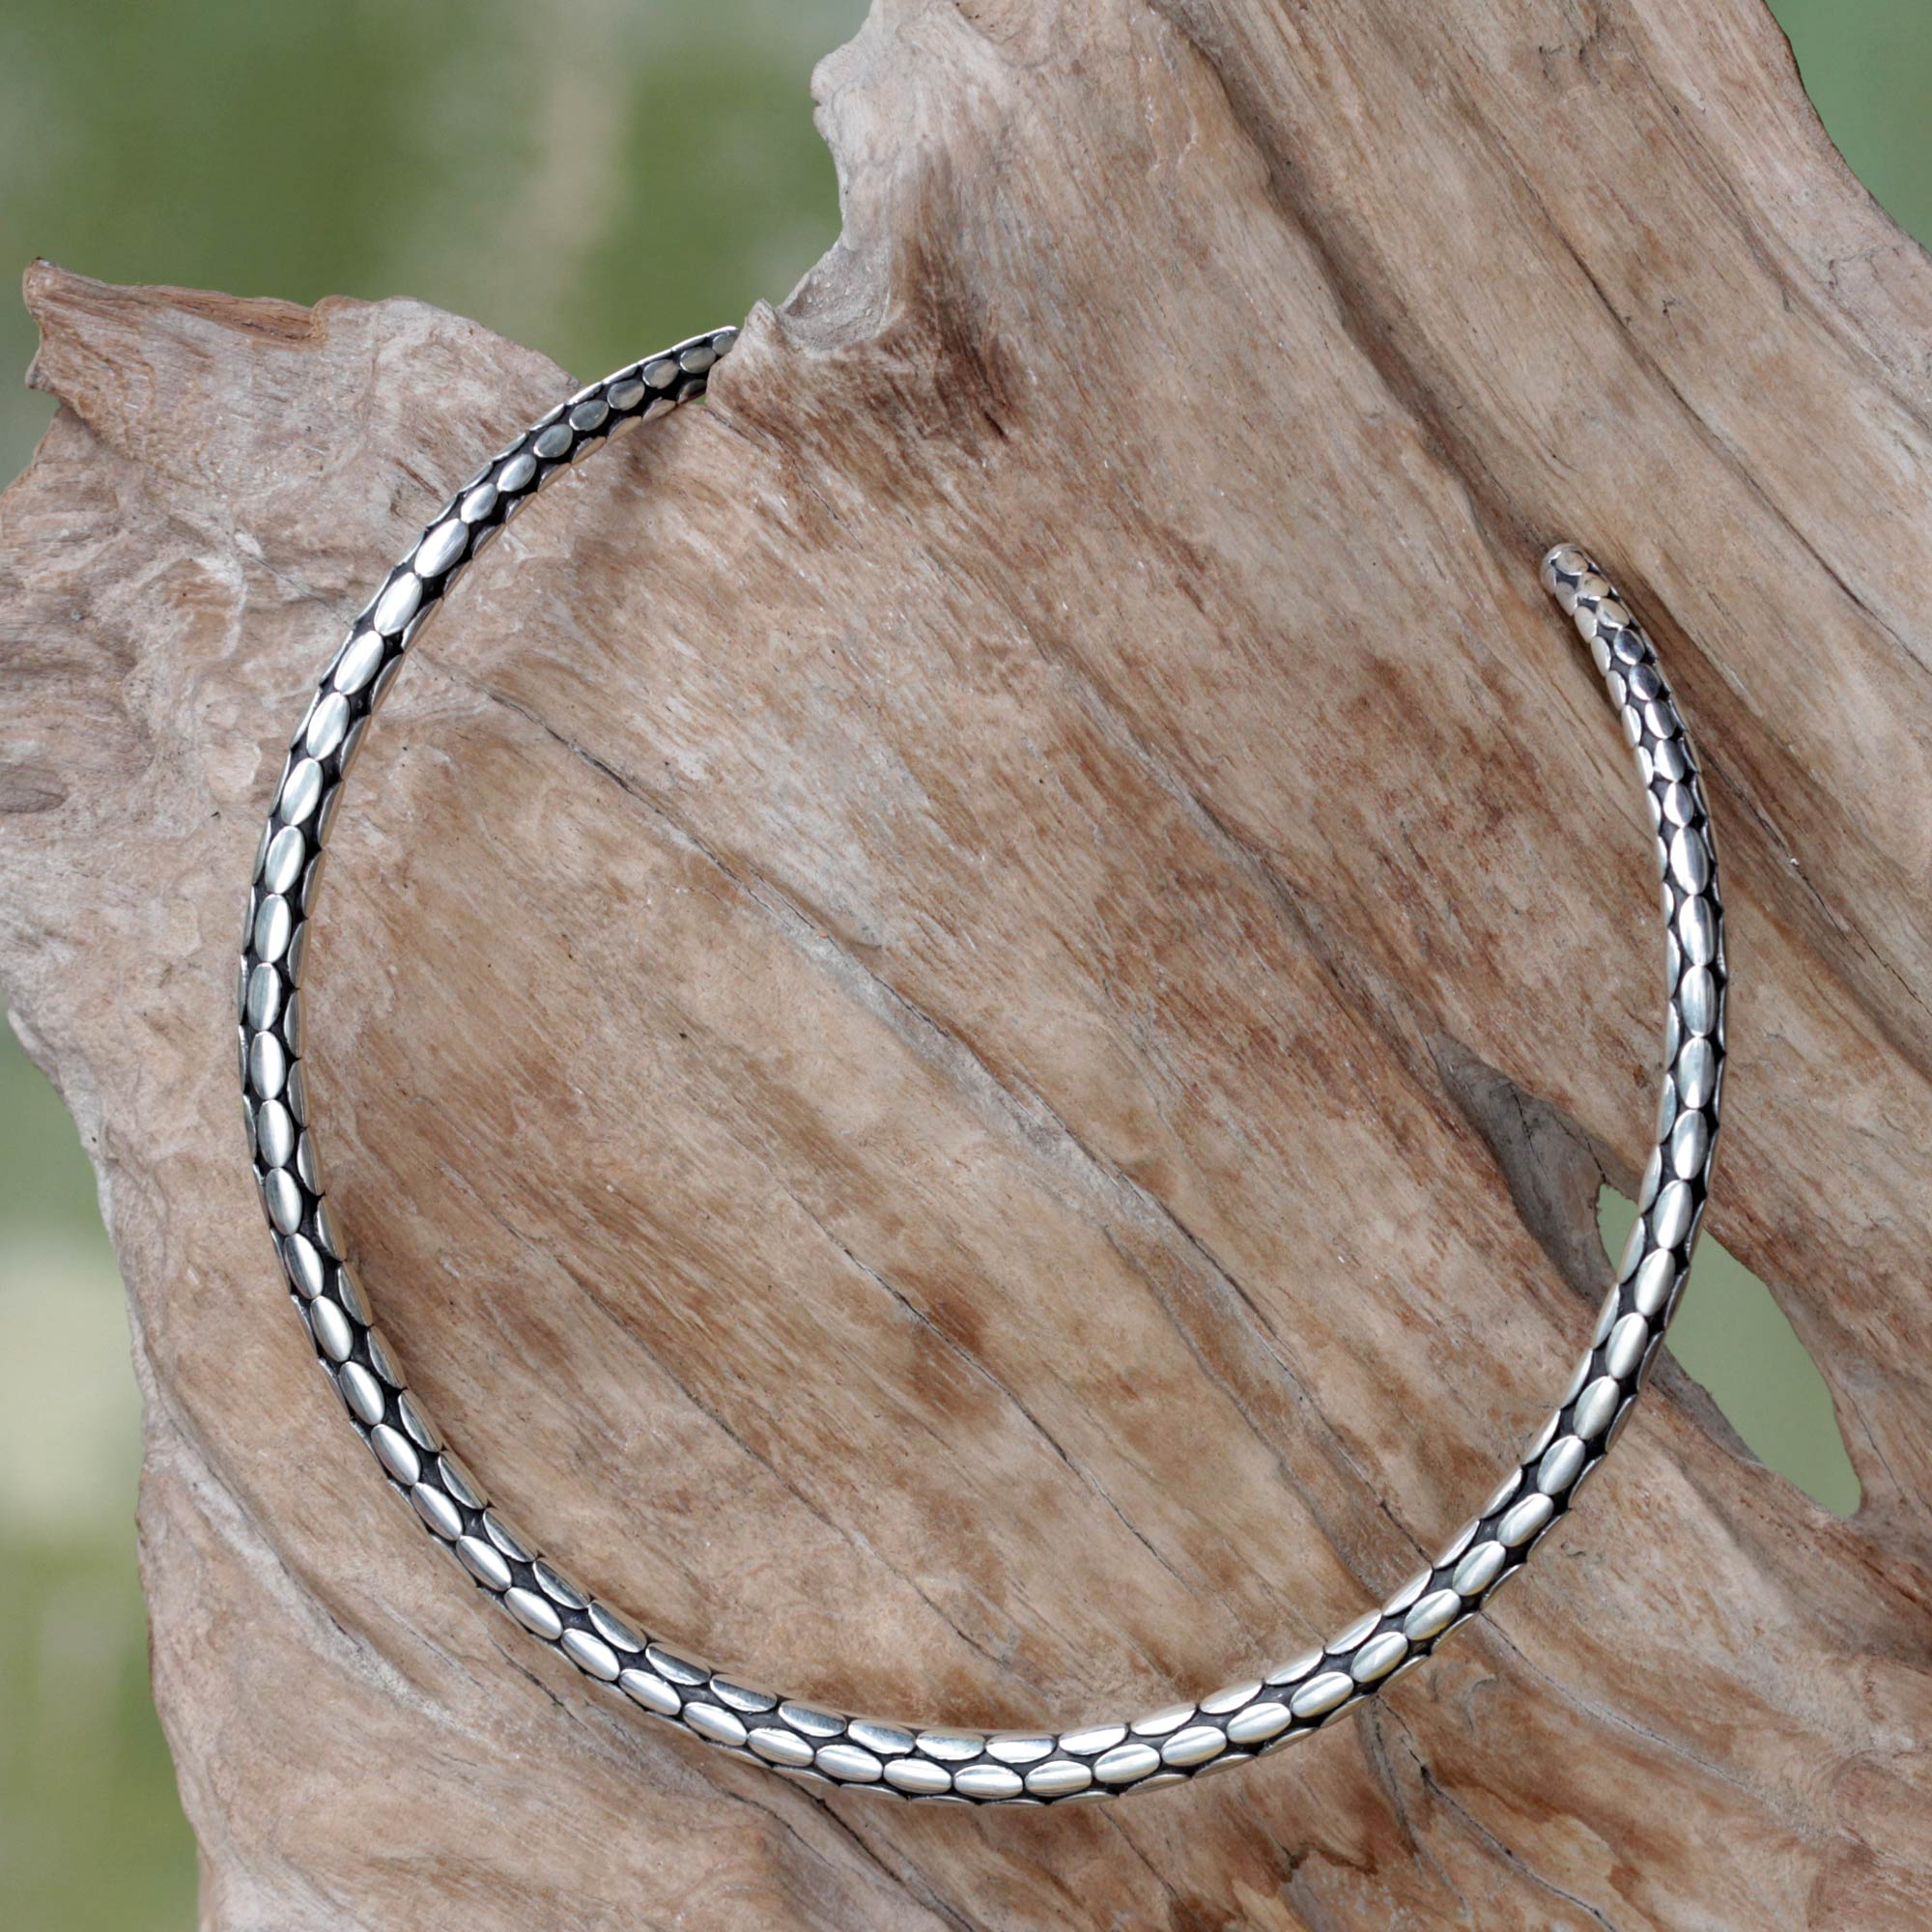 Matching Accessories 'Rice Harvest' Minimalist Sterling Silver Choker from Bali